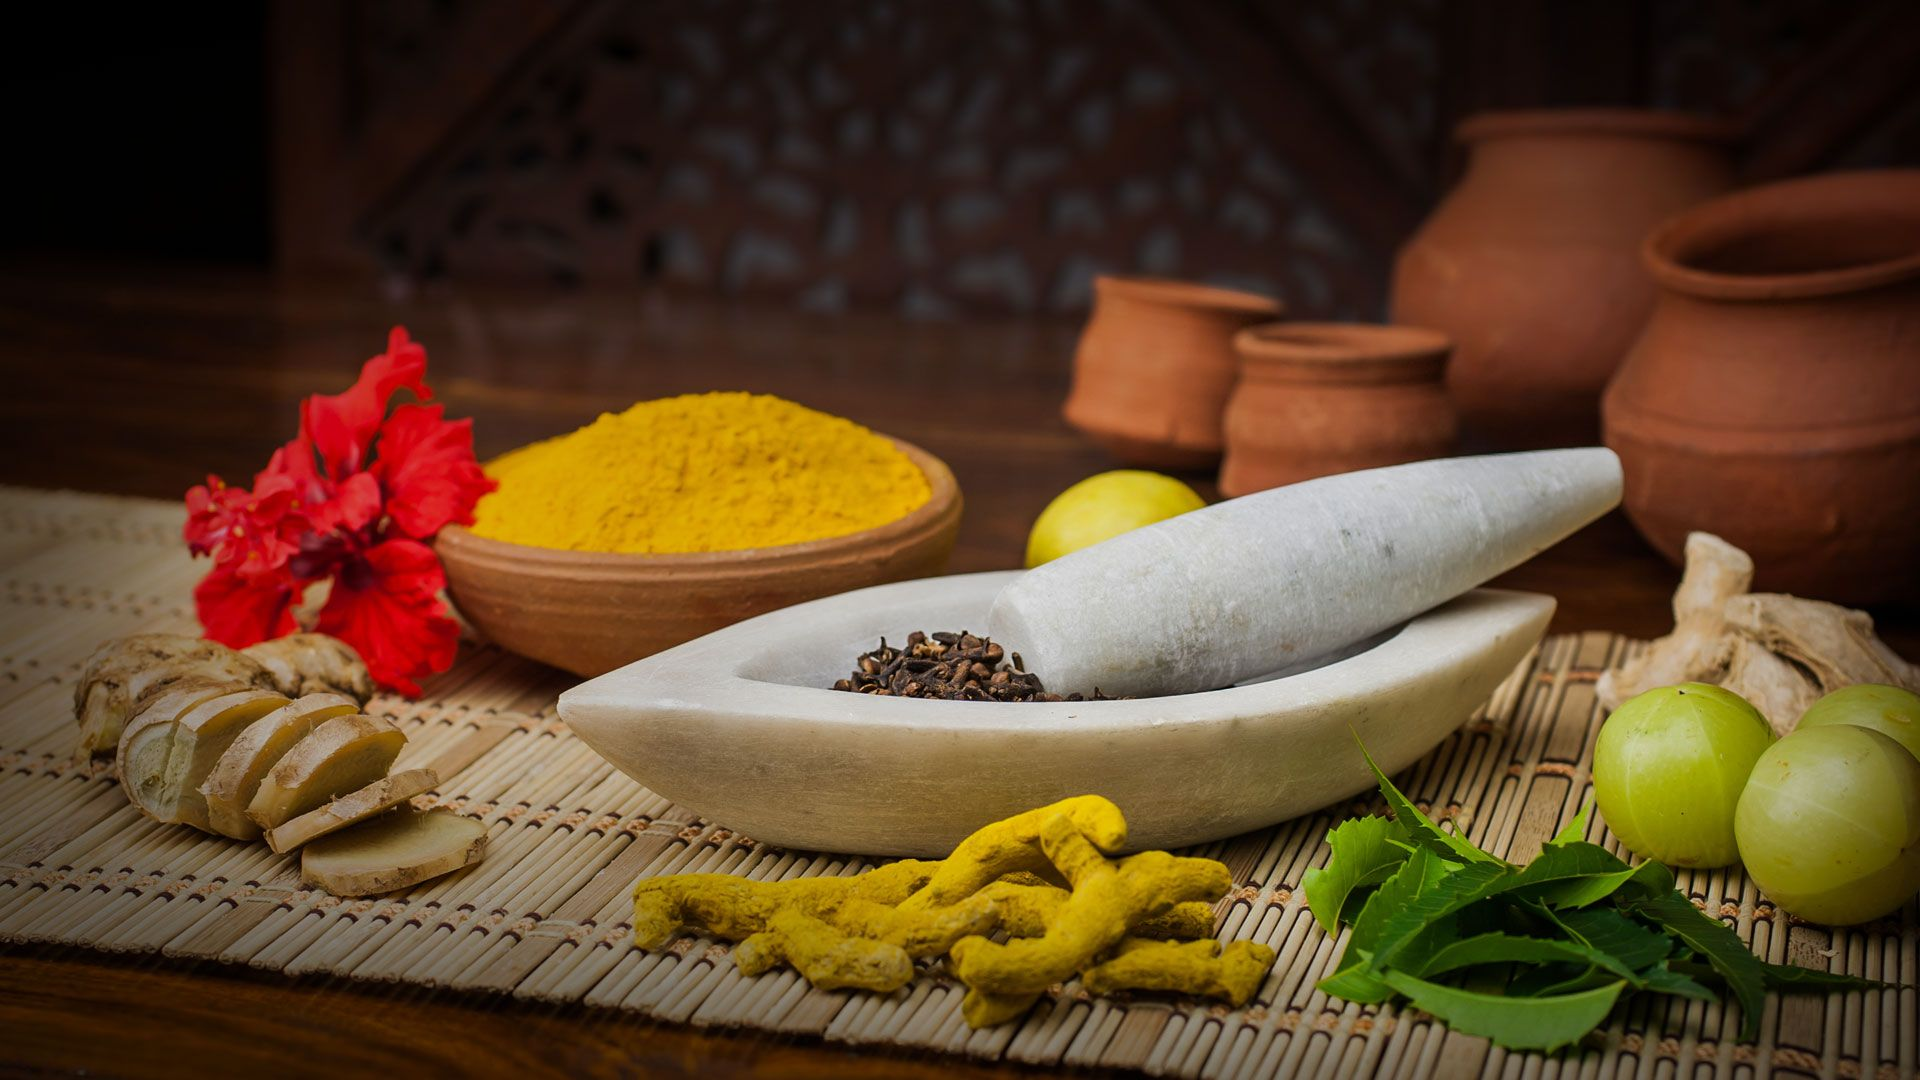 Download Ayurveda Wallpapers Images For Free Wallpaper Monodomo Ayurvedic Diet Ayurvedic Herbs Healing Herbs